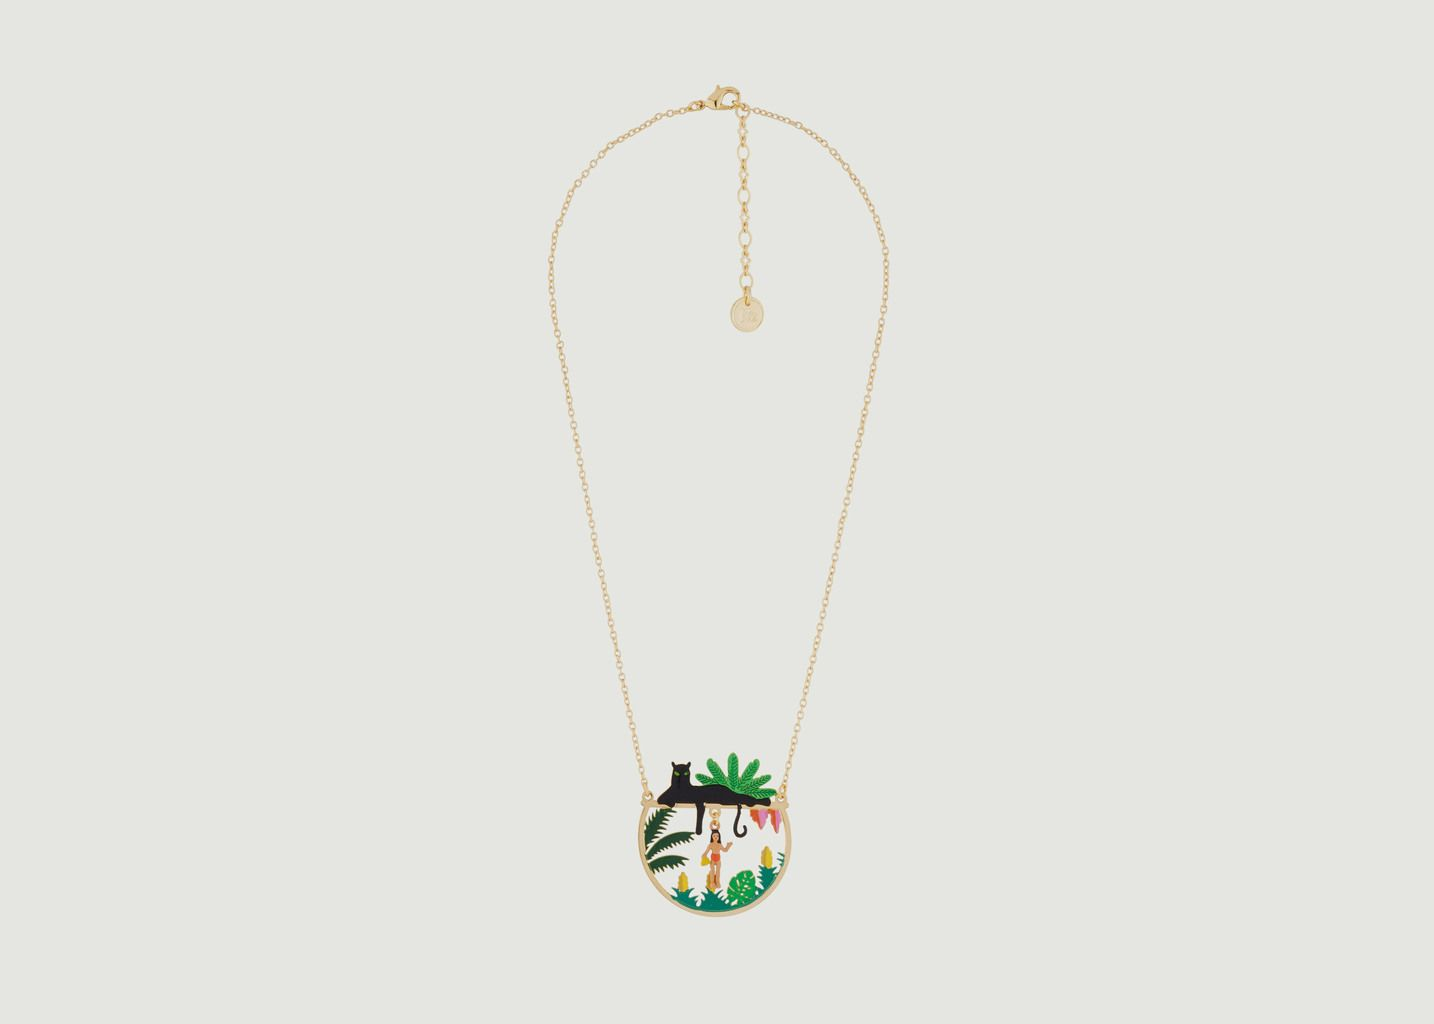 Collier Le livre de la Jungle - N2